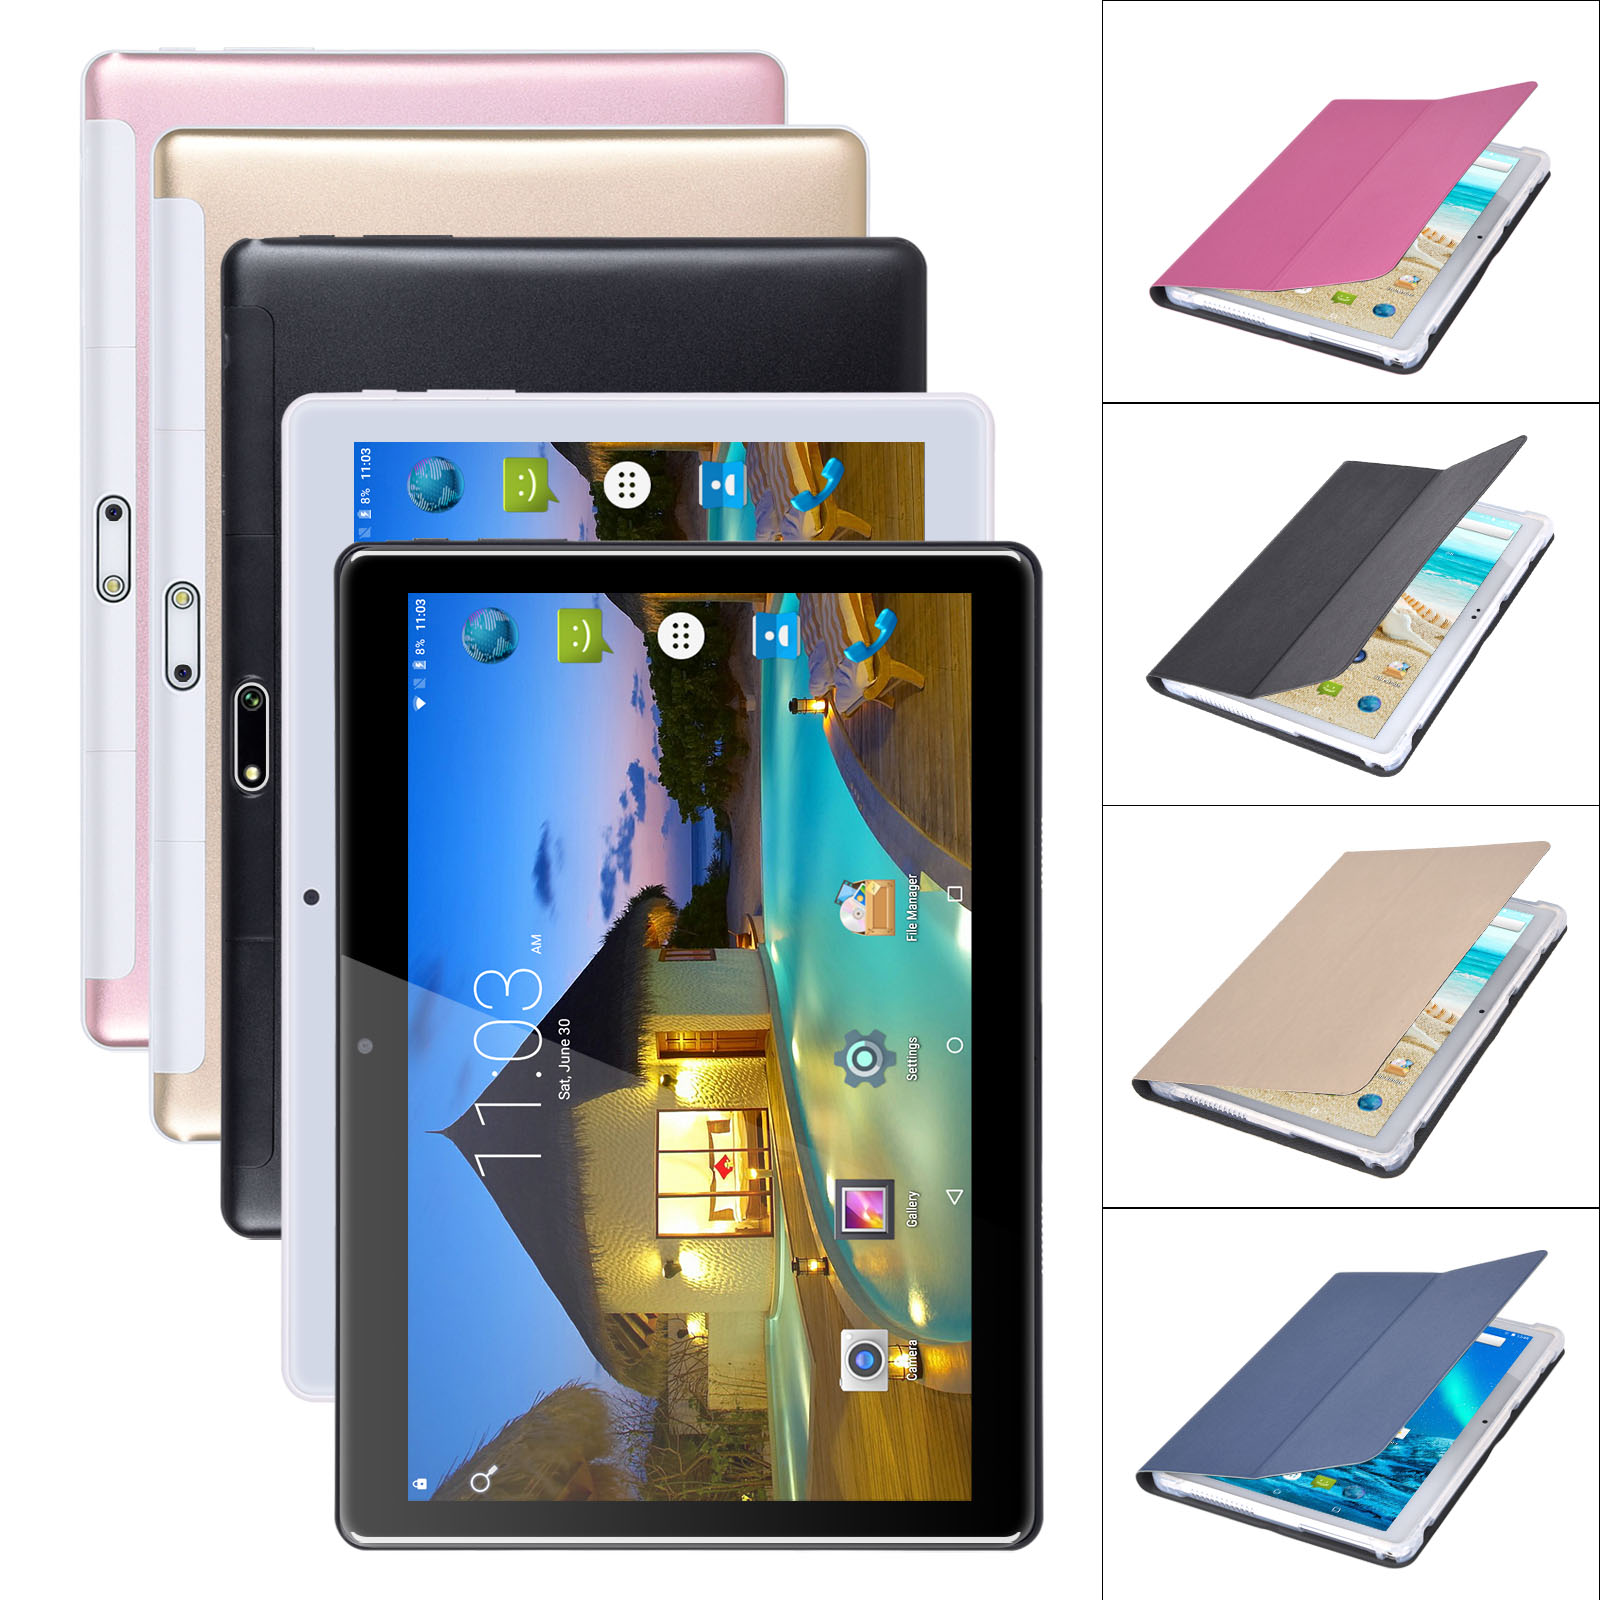 XGODY New 10.1 INCH 1+16GB Tablet PC 4-Core Android 7.0 Unlo